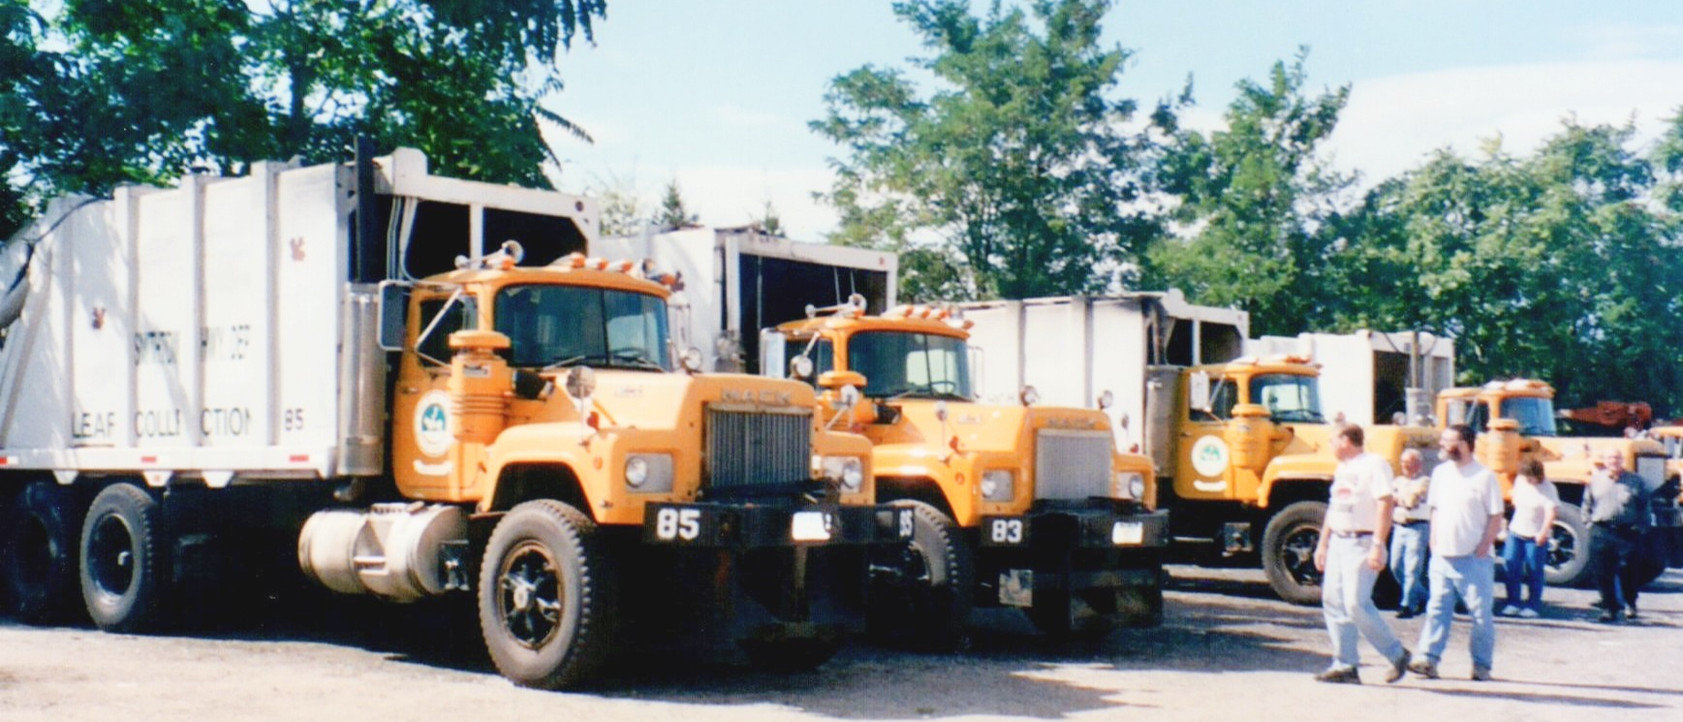 Older Macks with packer bodies for picking up leaf bags and brush. 85 truck (1988 Mack) assigned to Denis at one time.